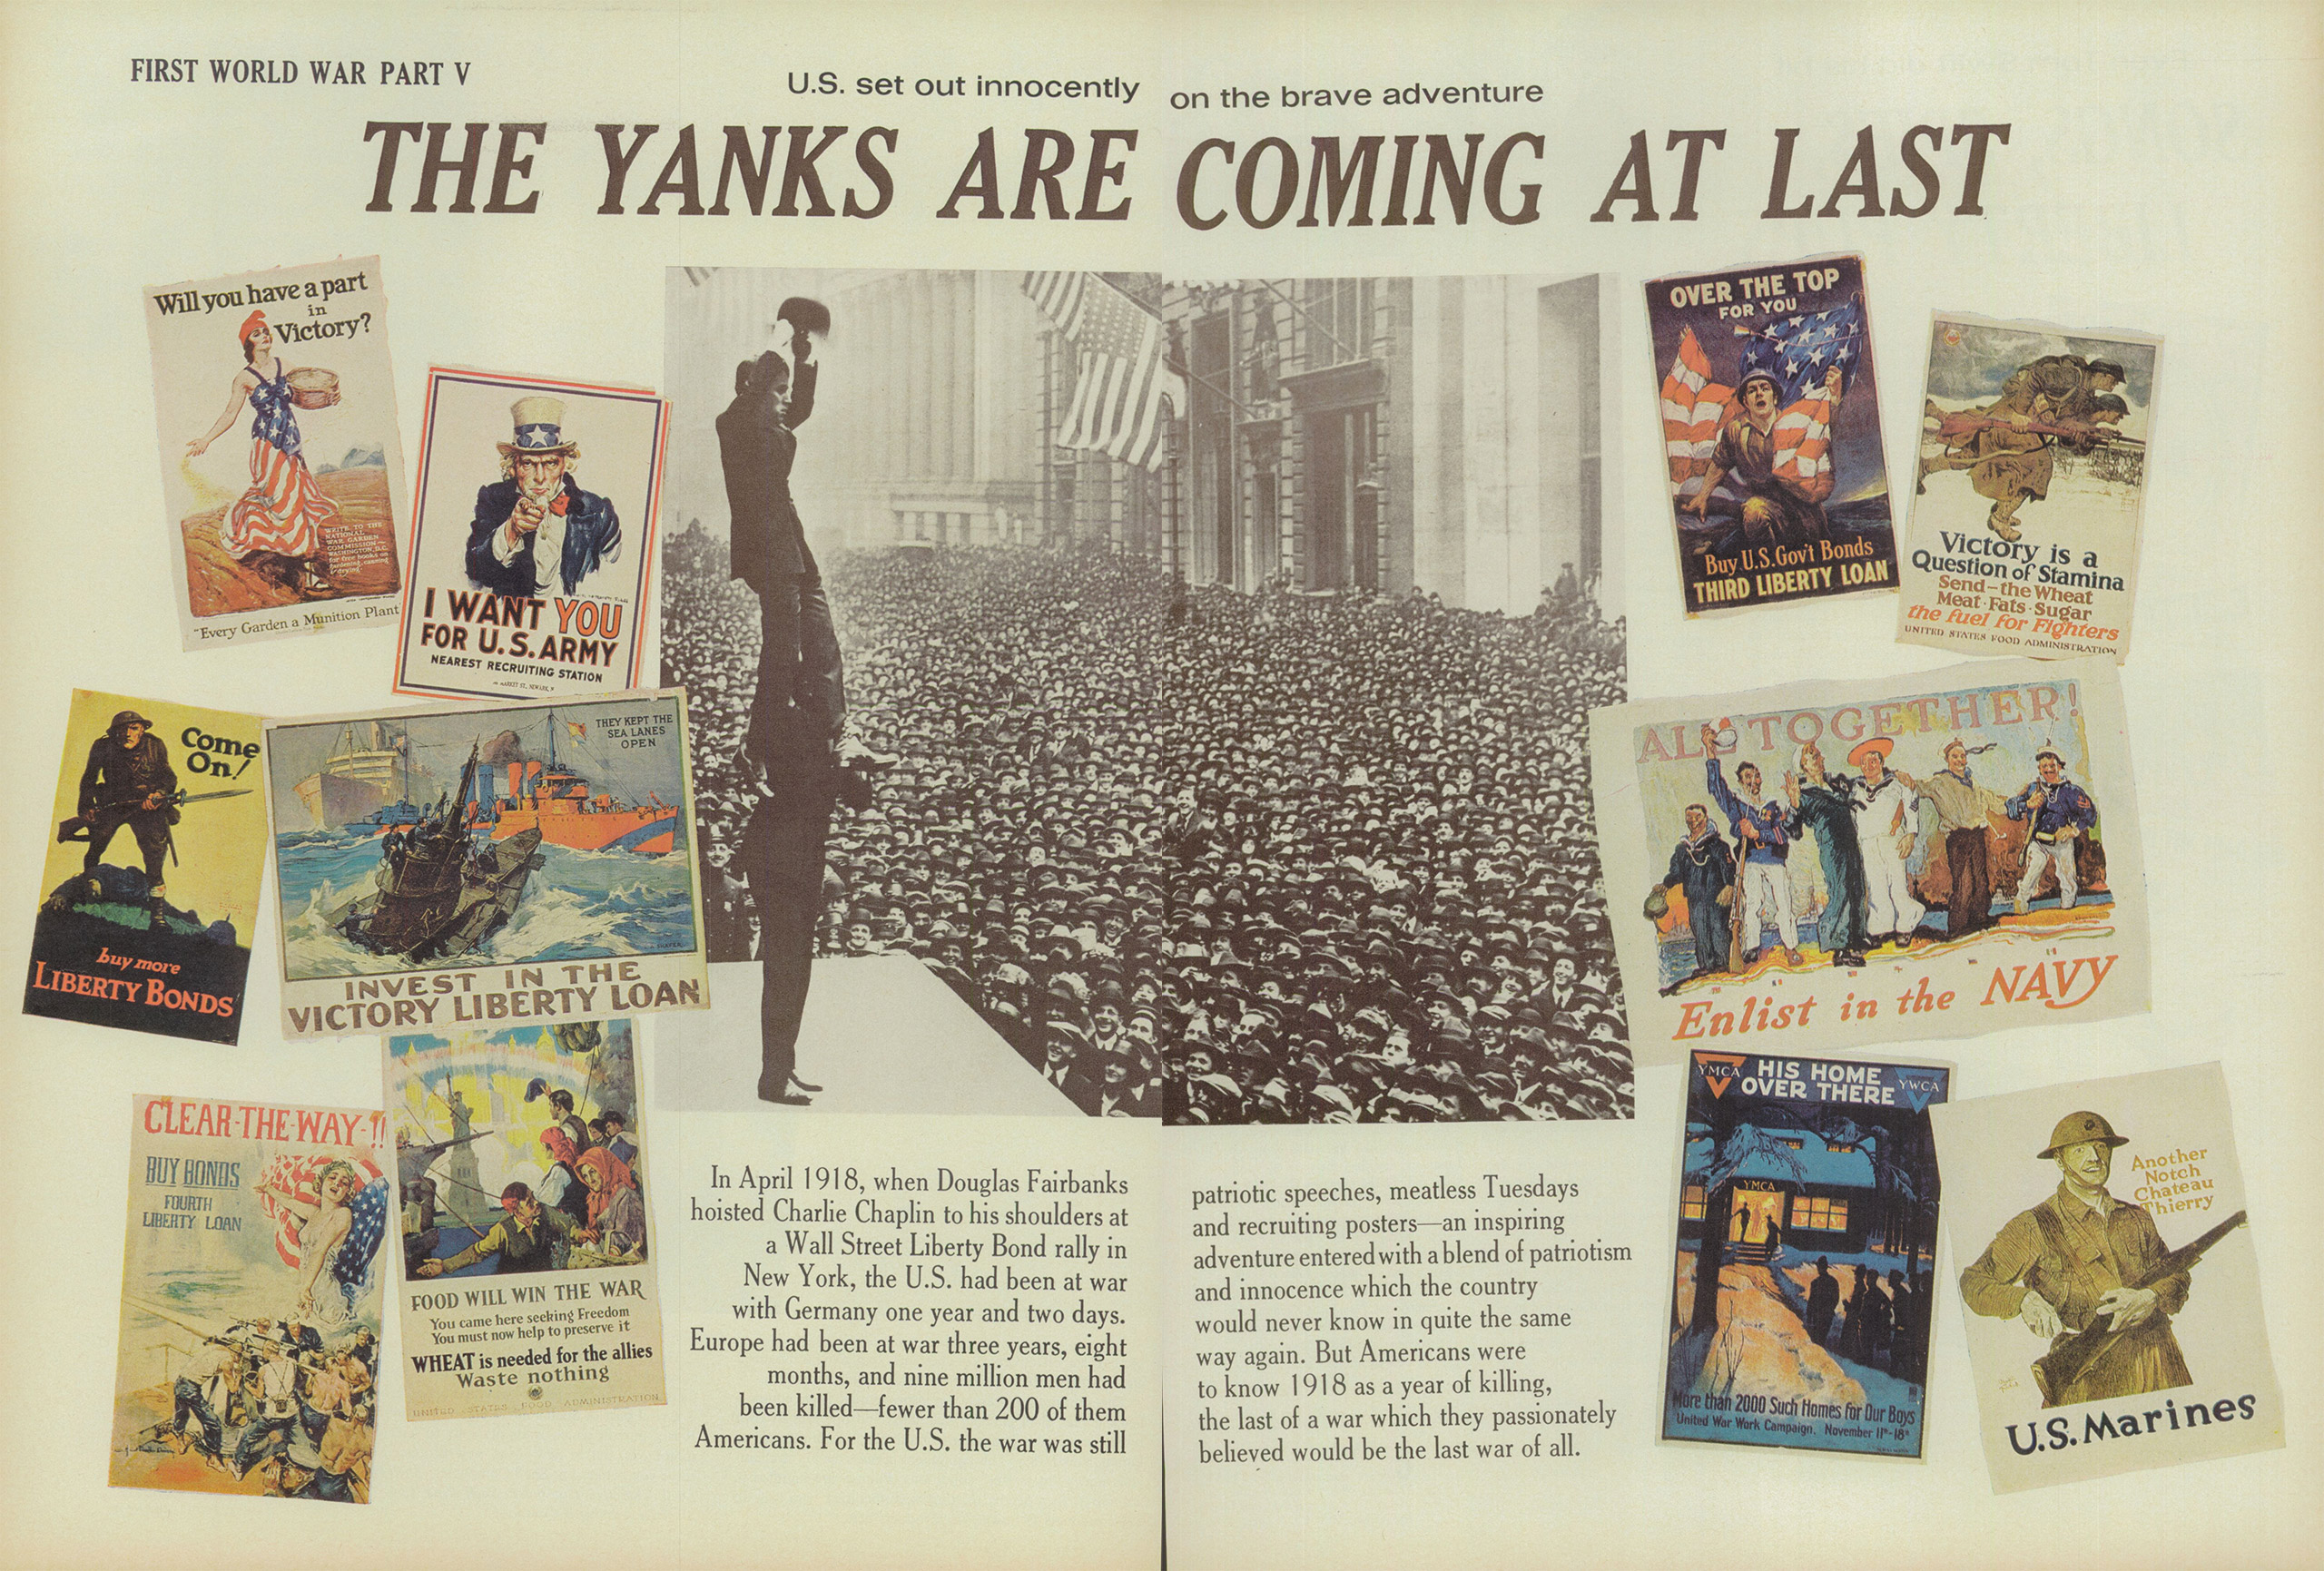 Part V of the First World War series in LIFE magazine from the May 22, 1964 issue.